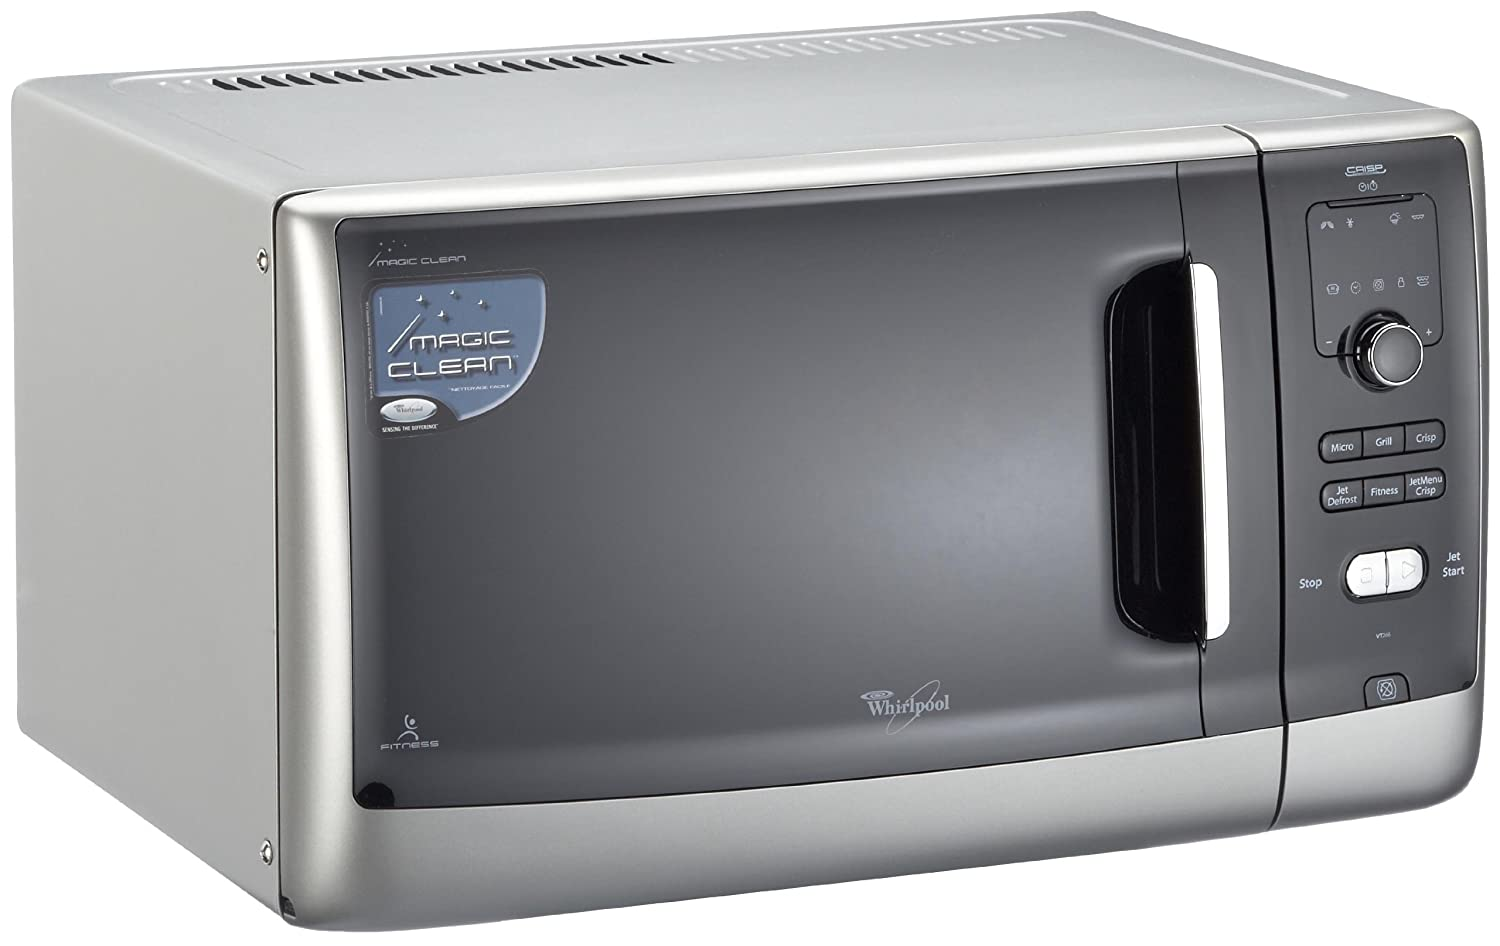 Whirlpool VT266/SL Microonde Grill, colore: Silver: Amazon.it ...